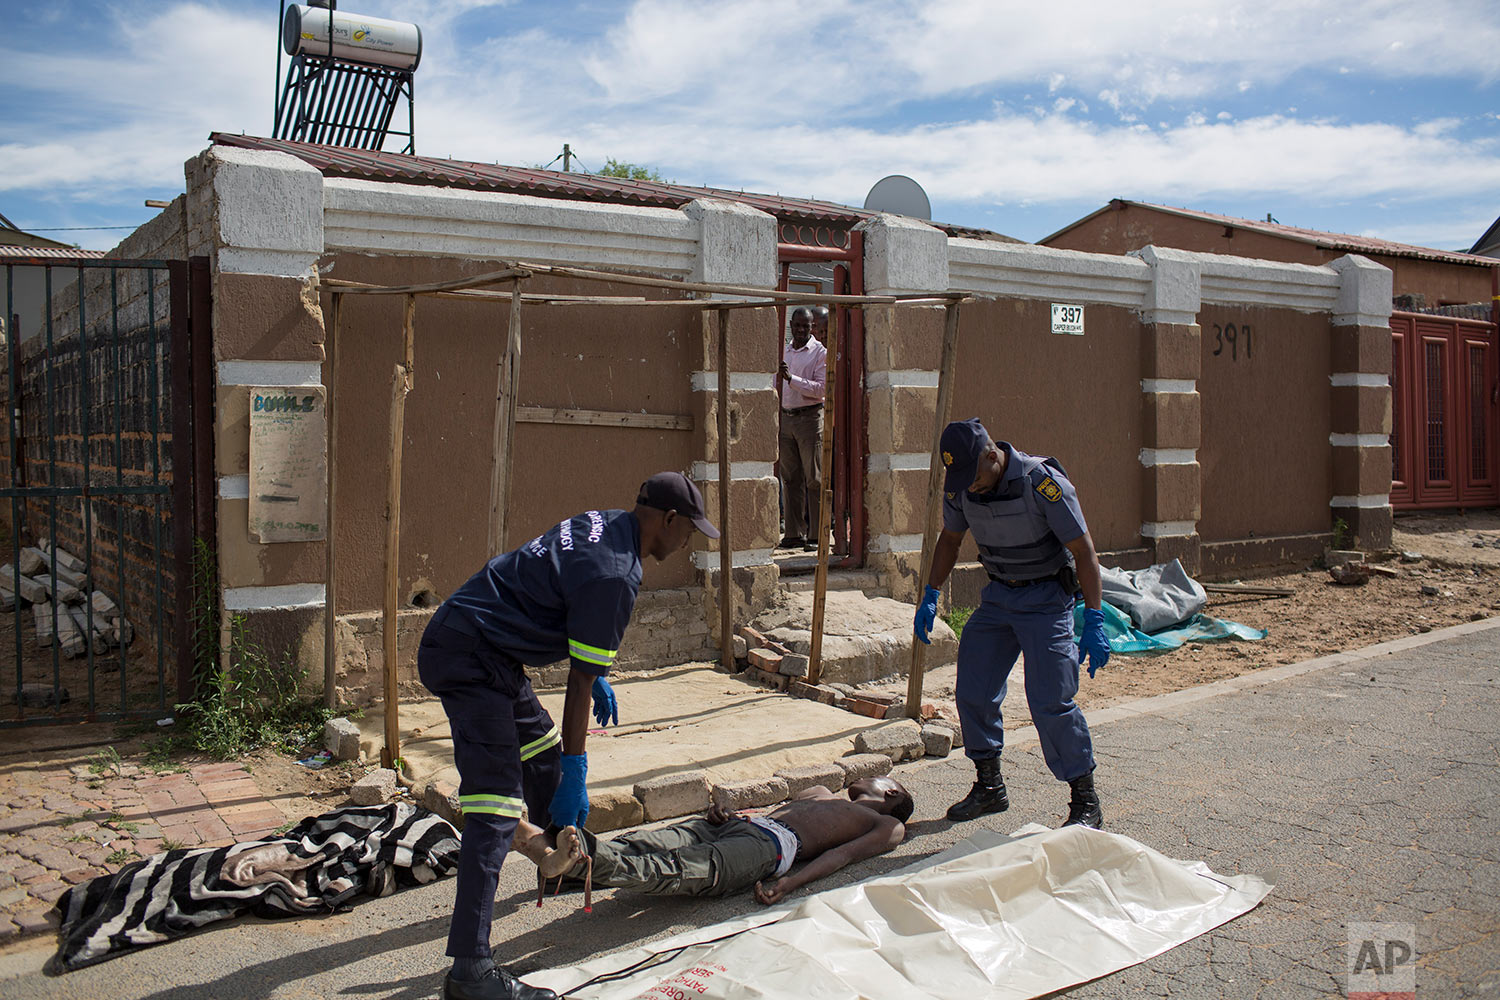 In this Sunday, Jan. 28, 2018 photo, a man killed in mob justice in Johannesburg is carried away to be transported to a mortuary. (AP Photo/Bram Janssen)